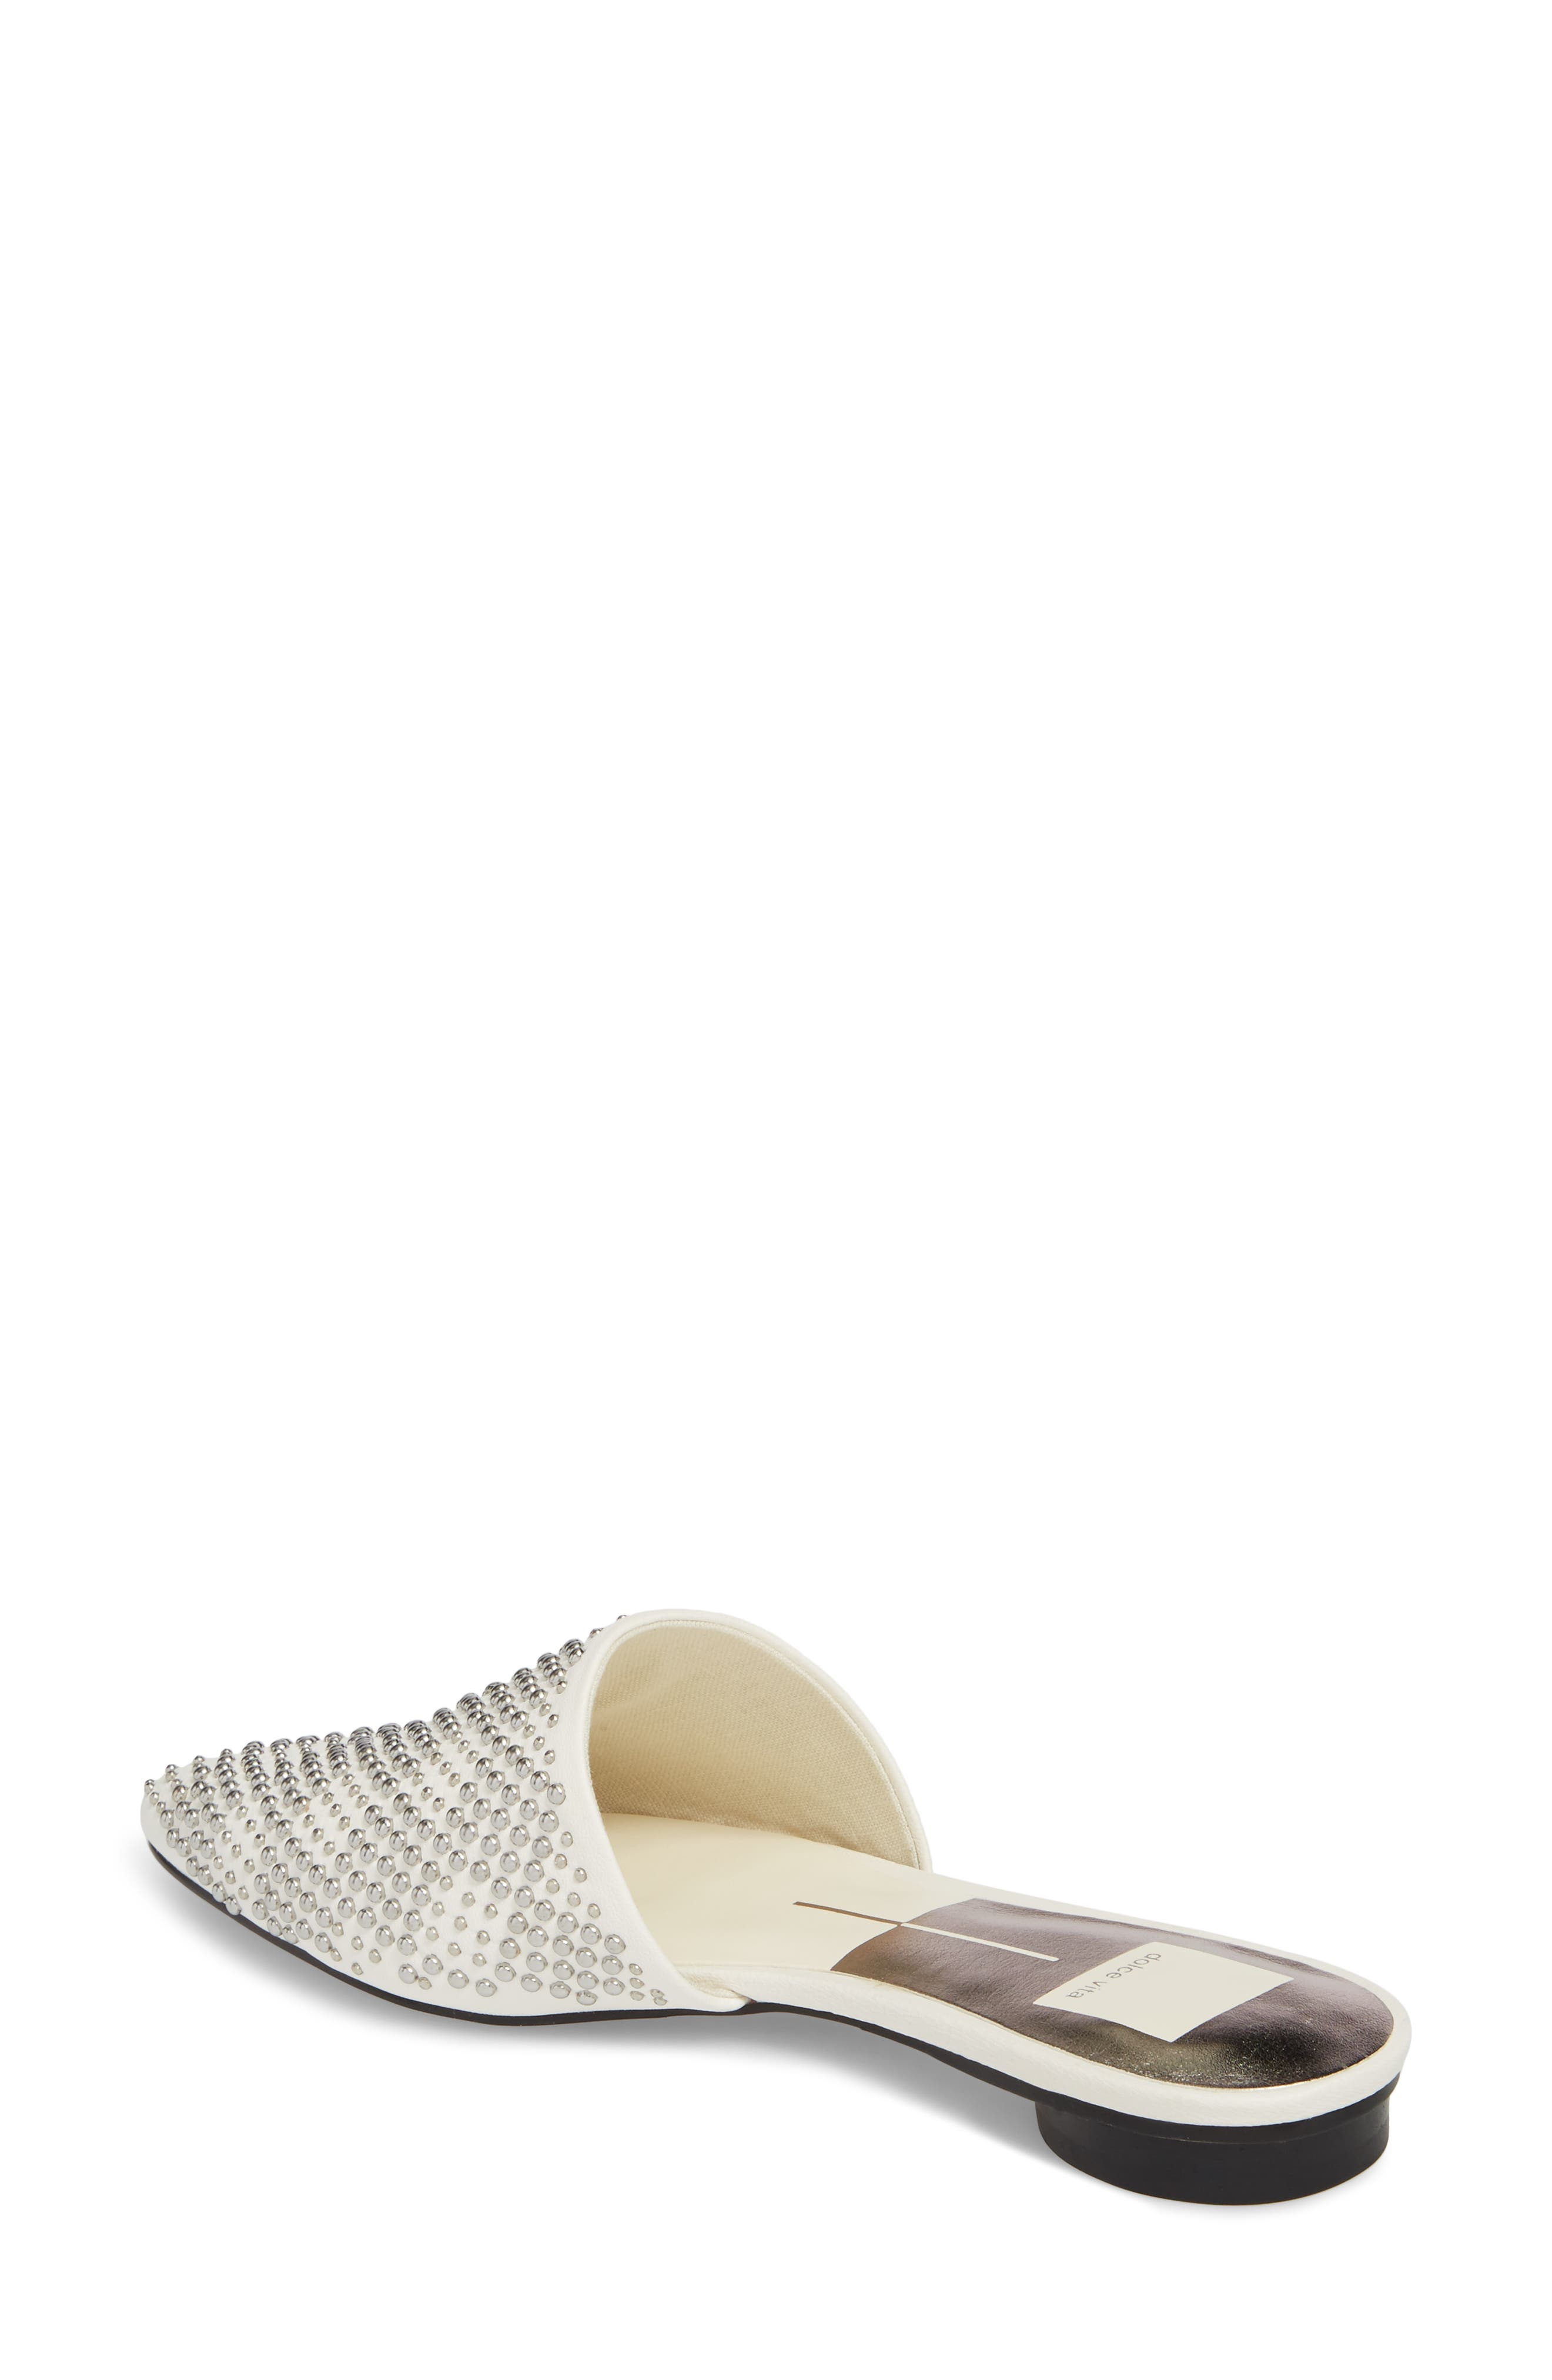 Elvah Studded Mule,                             Alternate thumbnail 2, color,                             OFF WHITE LEATHER STUDS